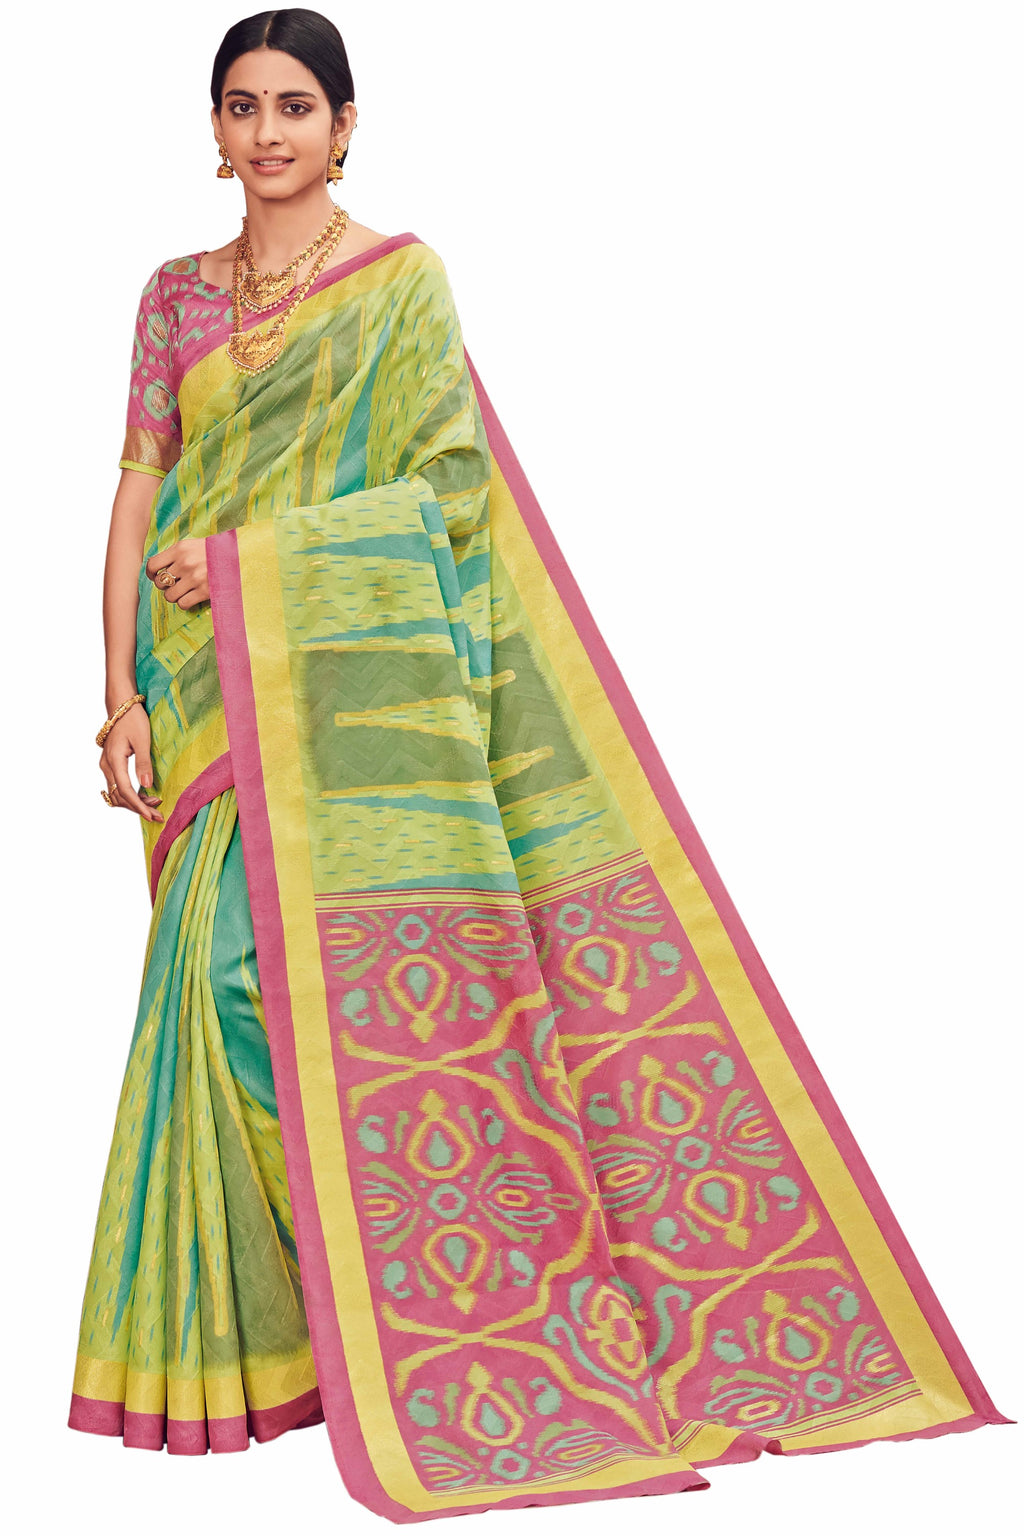 Pastel Green & Pink Color Bhagalpuri Festive & Party Wear Sarees NYF-8657